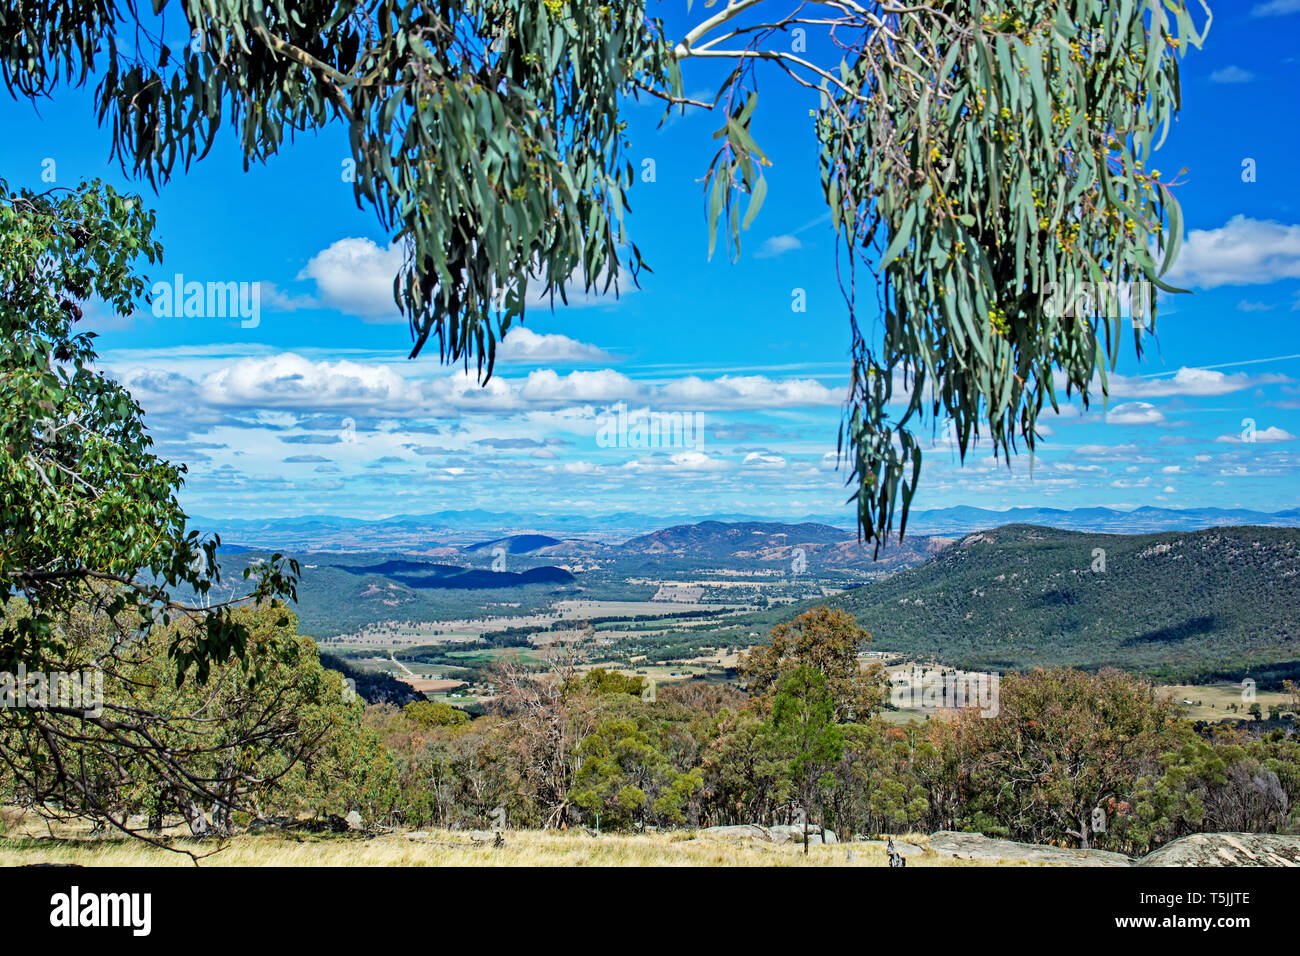 Overlooking farm lands and Daruka, an outer suburb north of Tamworth Australia. - Stock Image